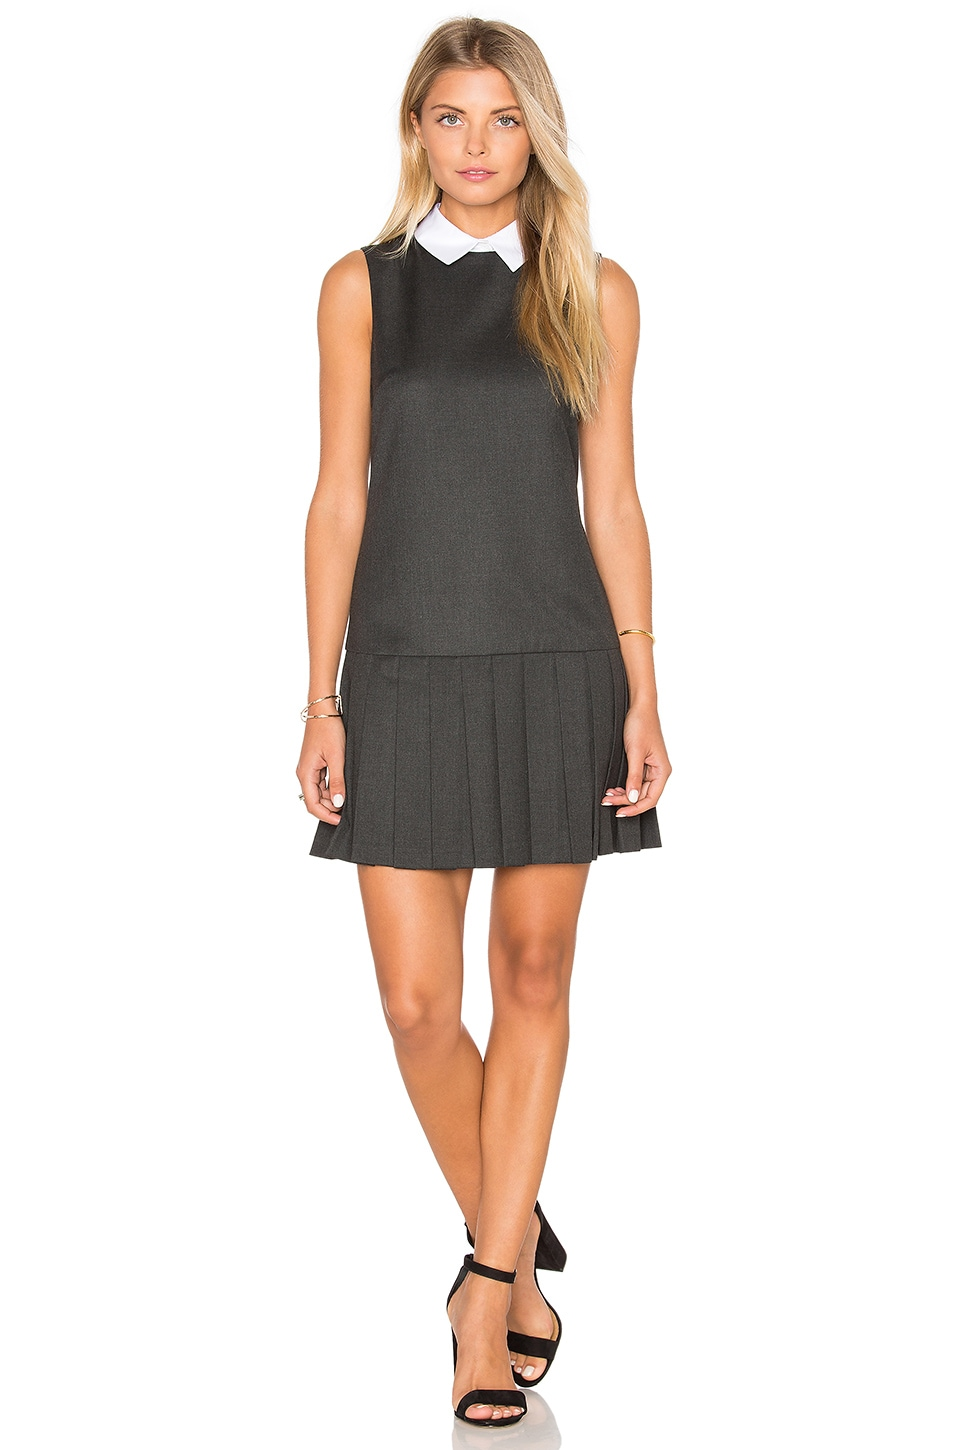 Alice + Olivia Alice Dress in Dark Charcoal